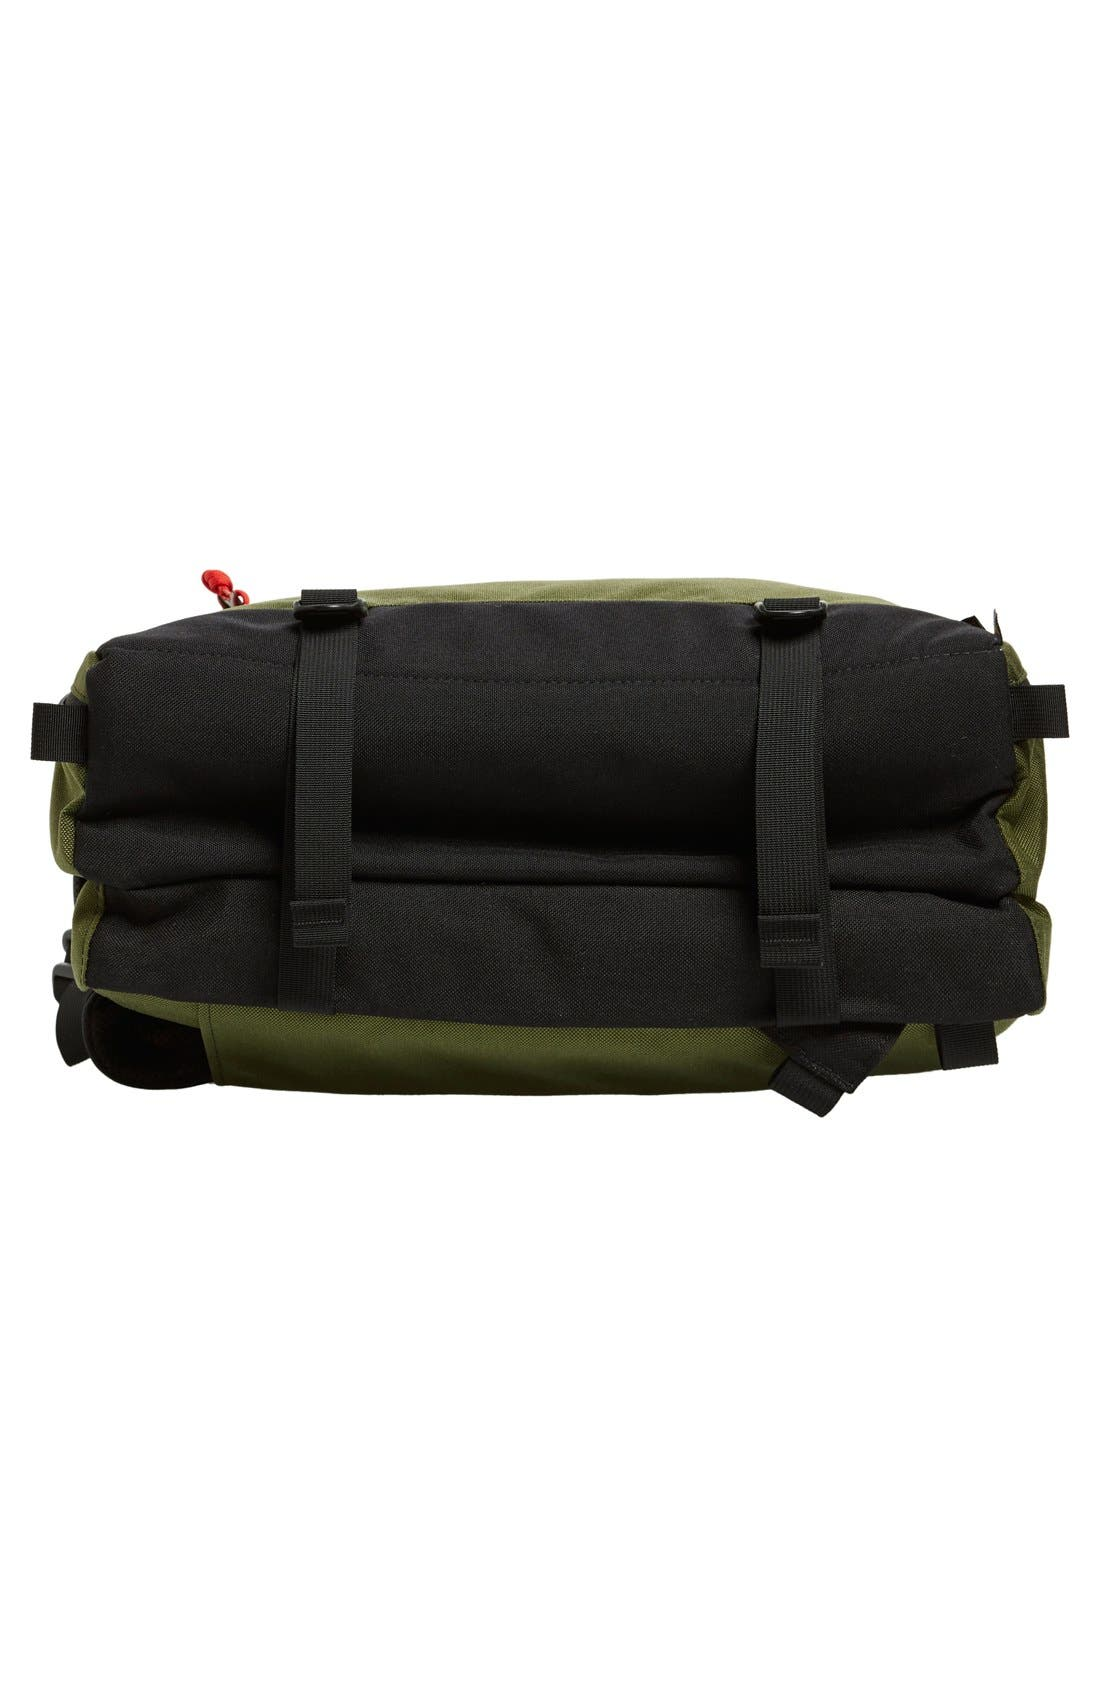 '3-Day' Briefcase,                             Alternate thumbnail 2, color,                             BLACK/ OLIVE